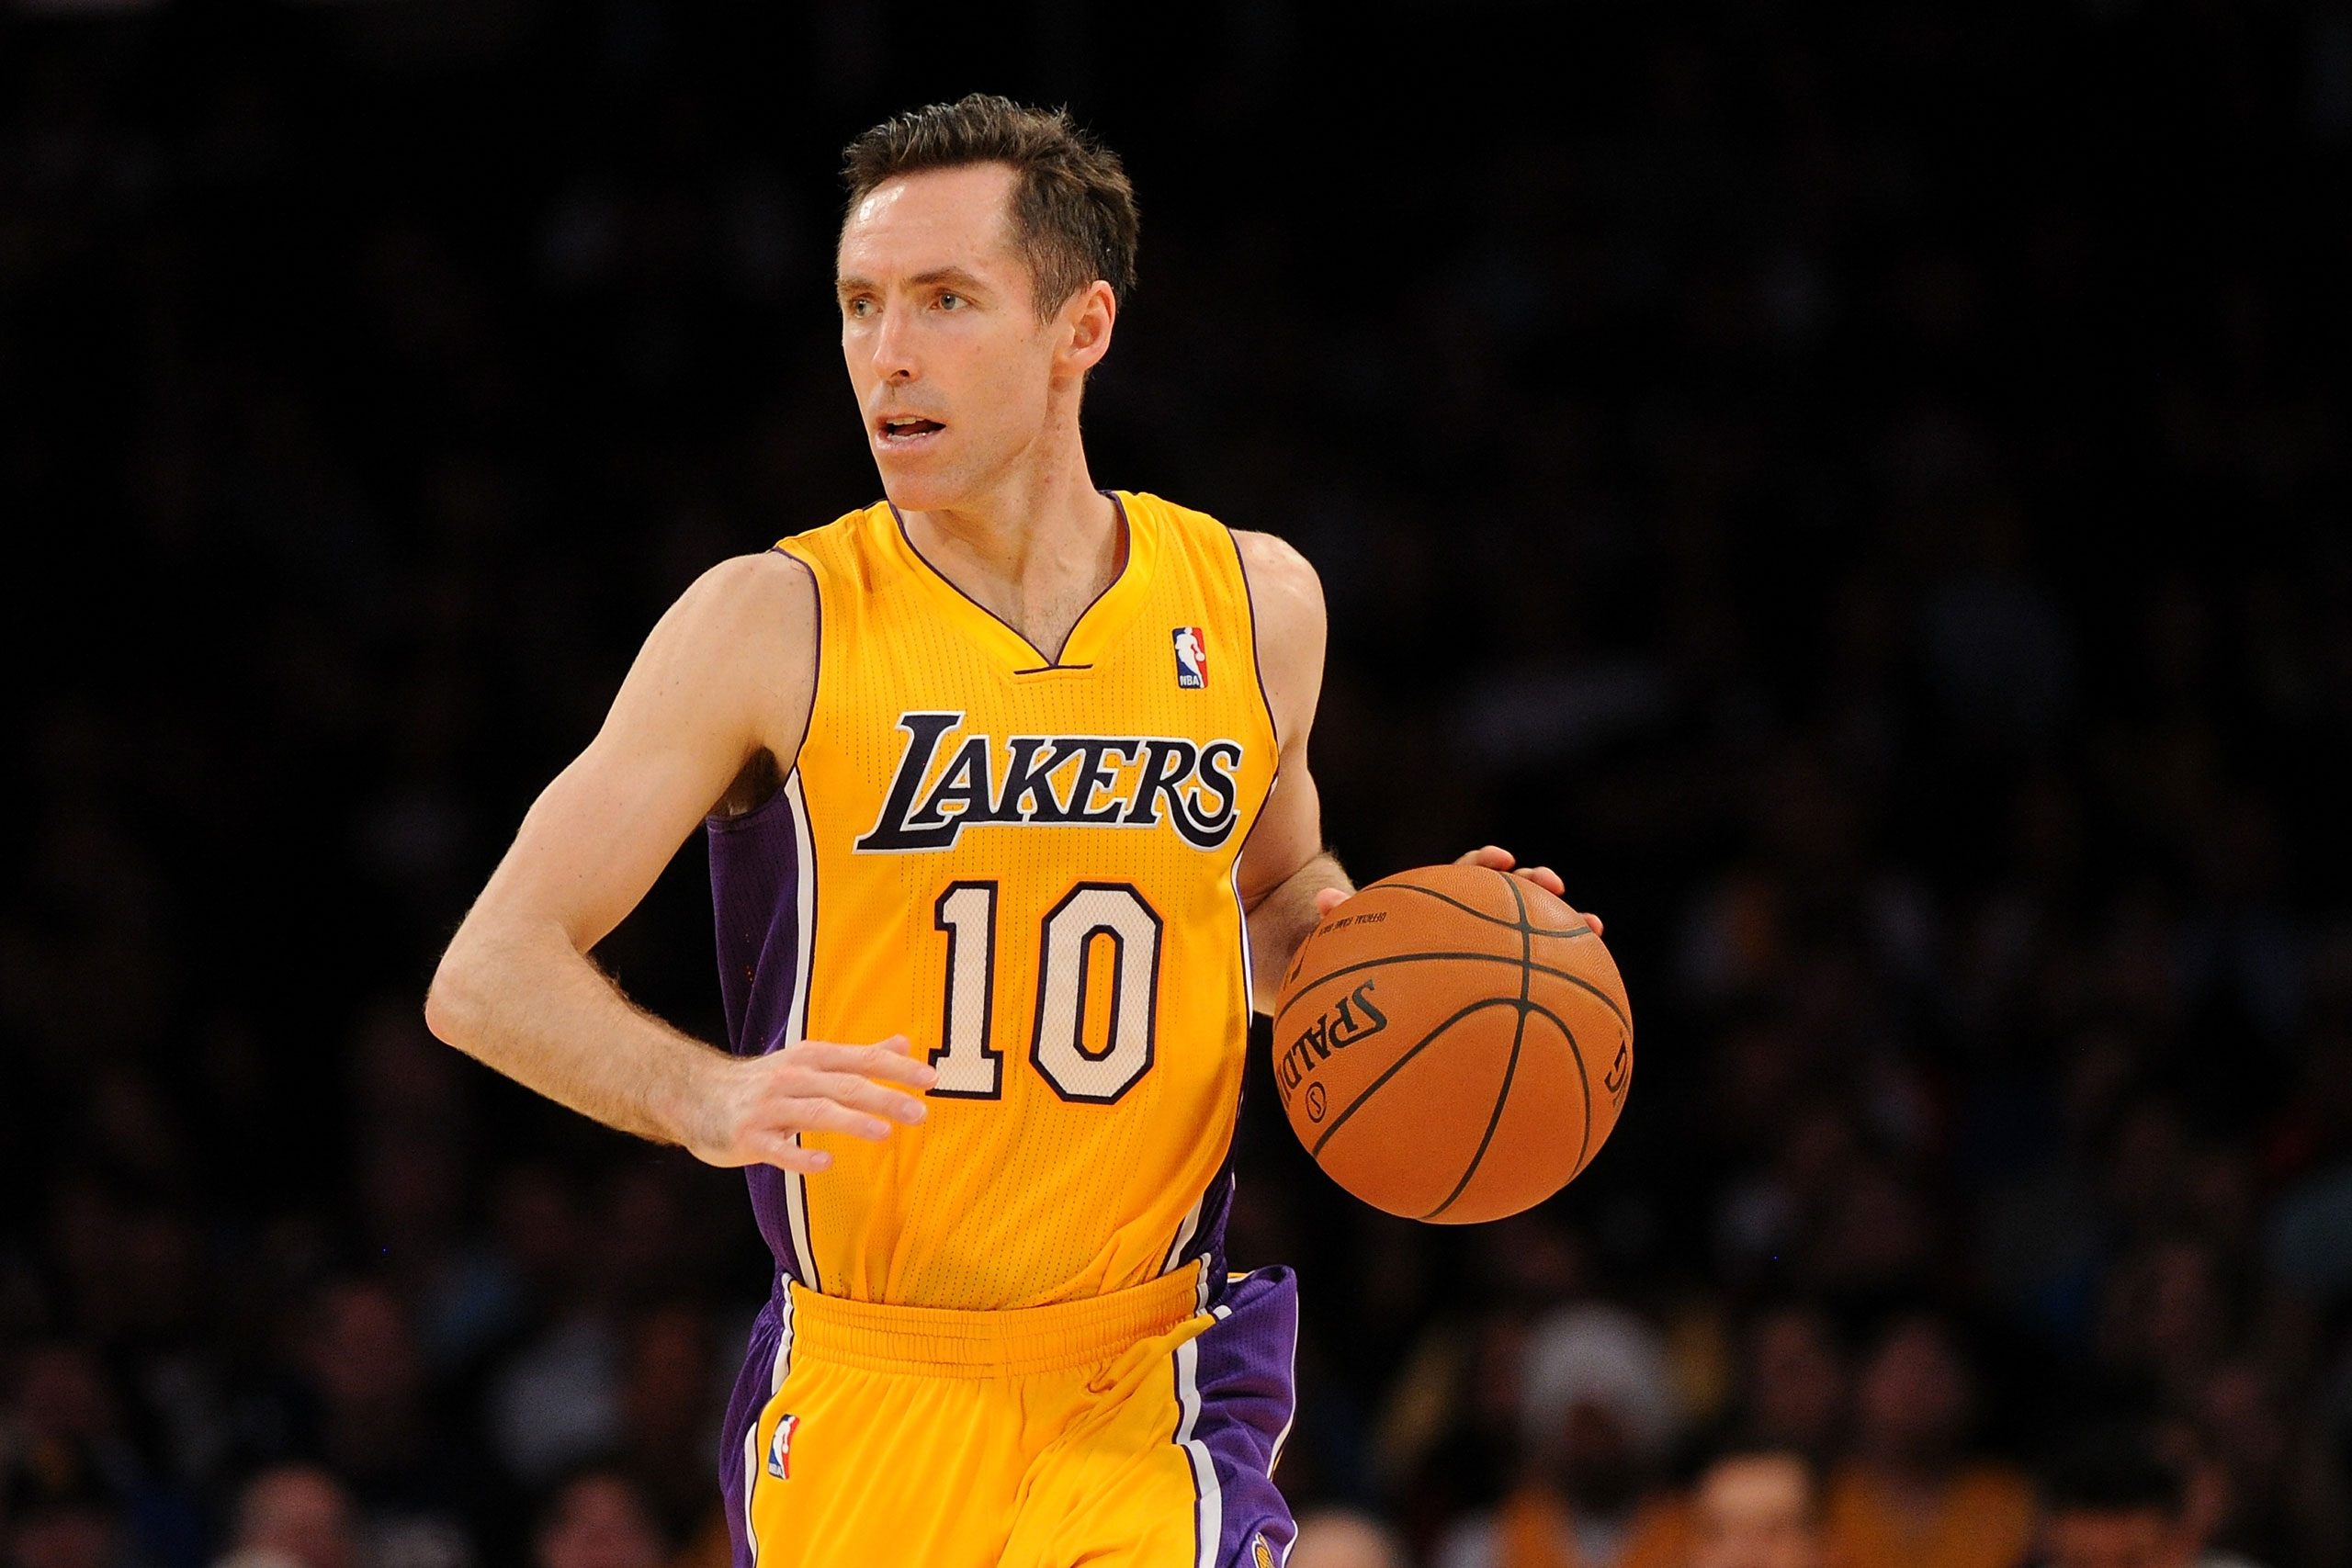 Steve Nash of the Los Angeles Lakers drives the ball upcourt during a game against the Utah Jazz at Staples Center on Feb. 11, 2014 in Los Angeles.